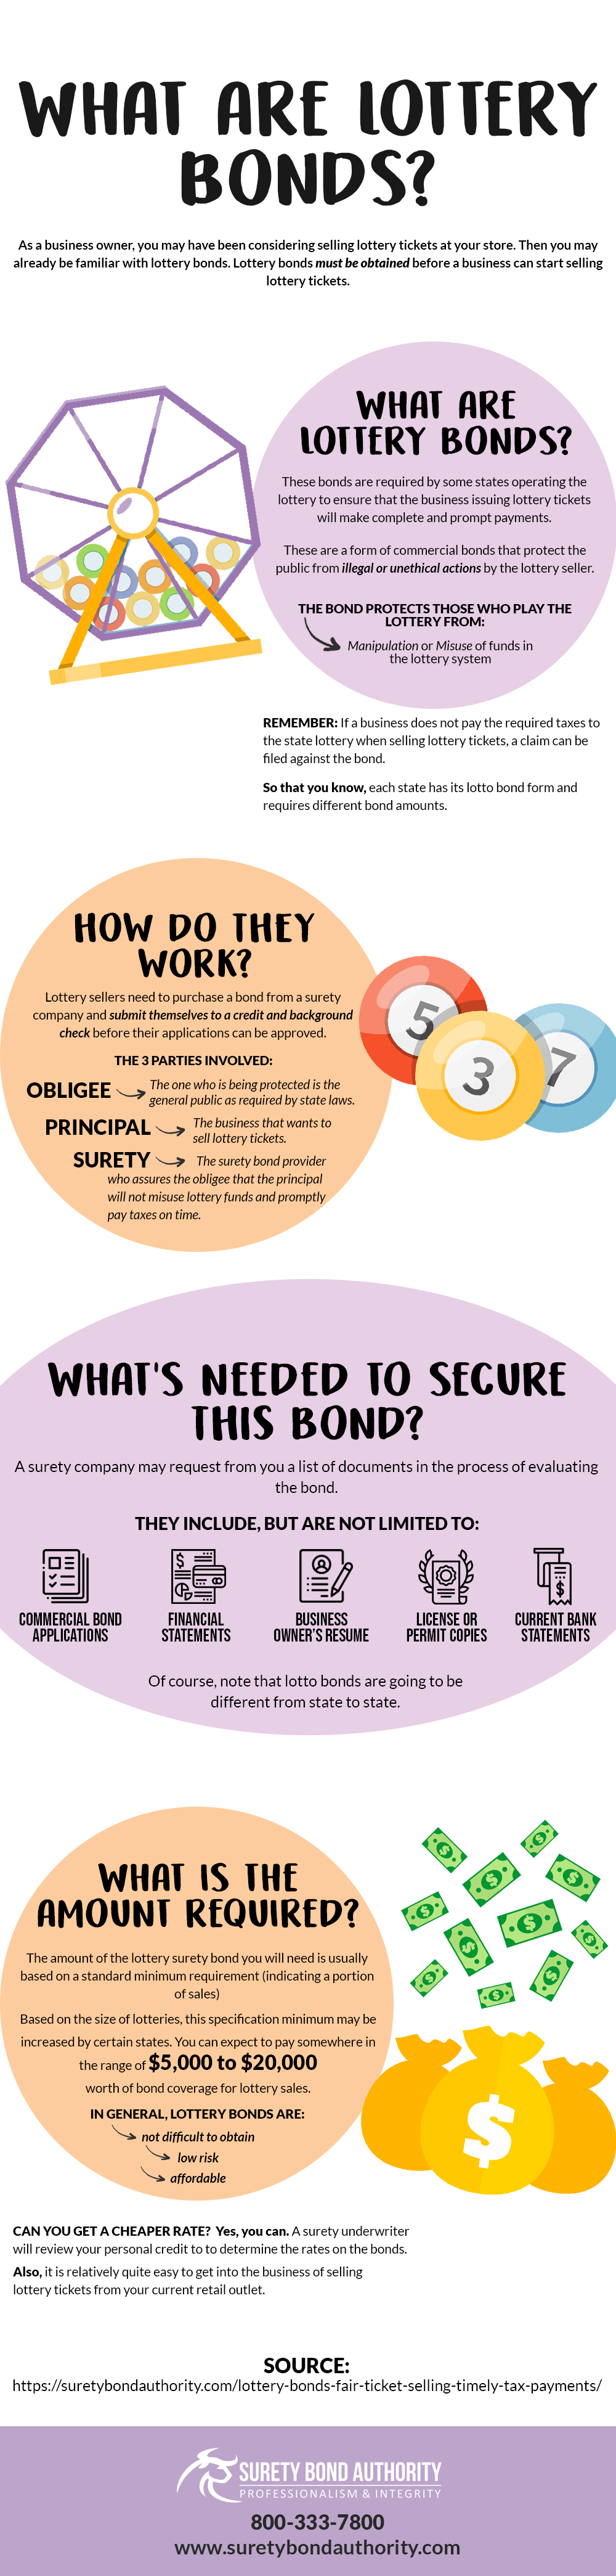 Lottery Bonds Infographic